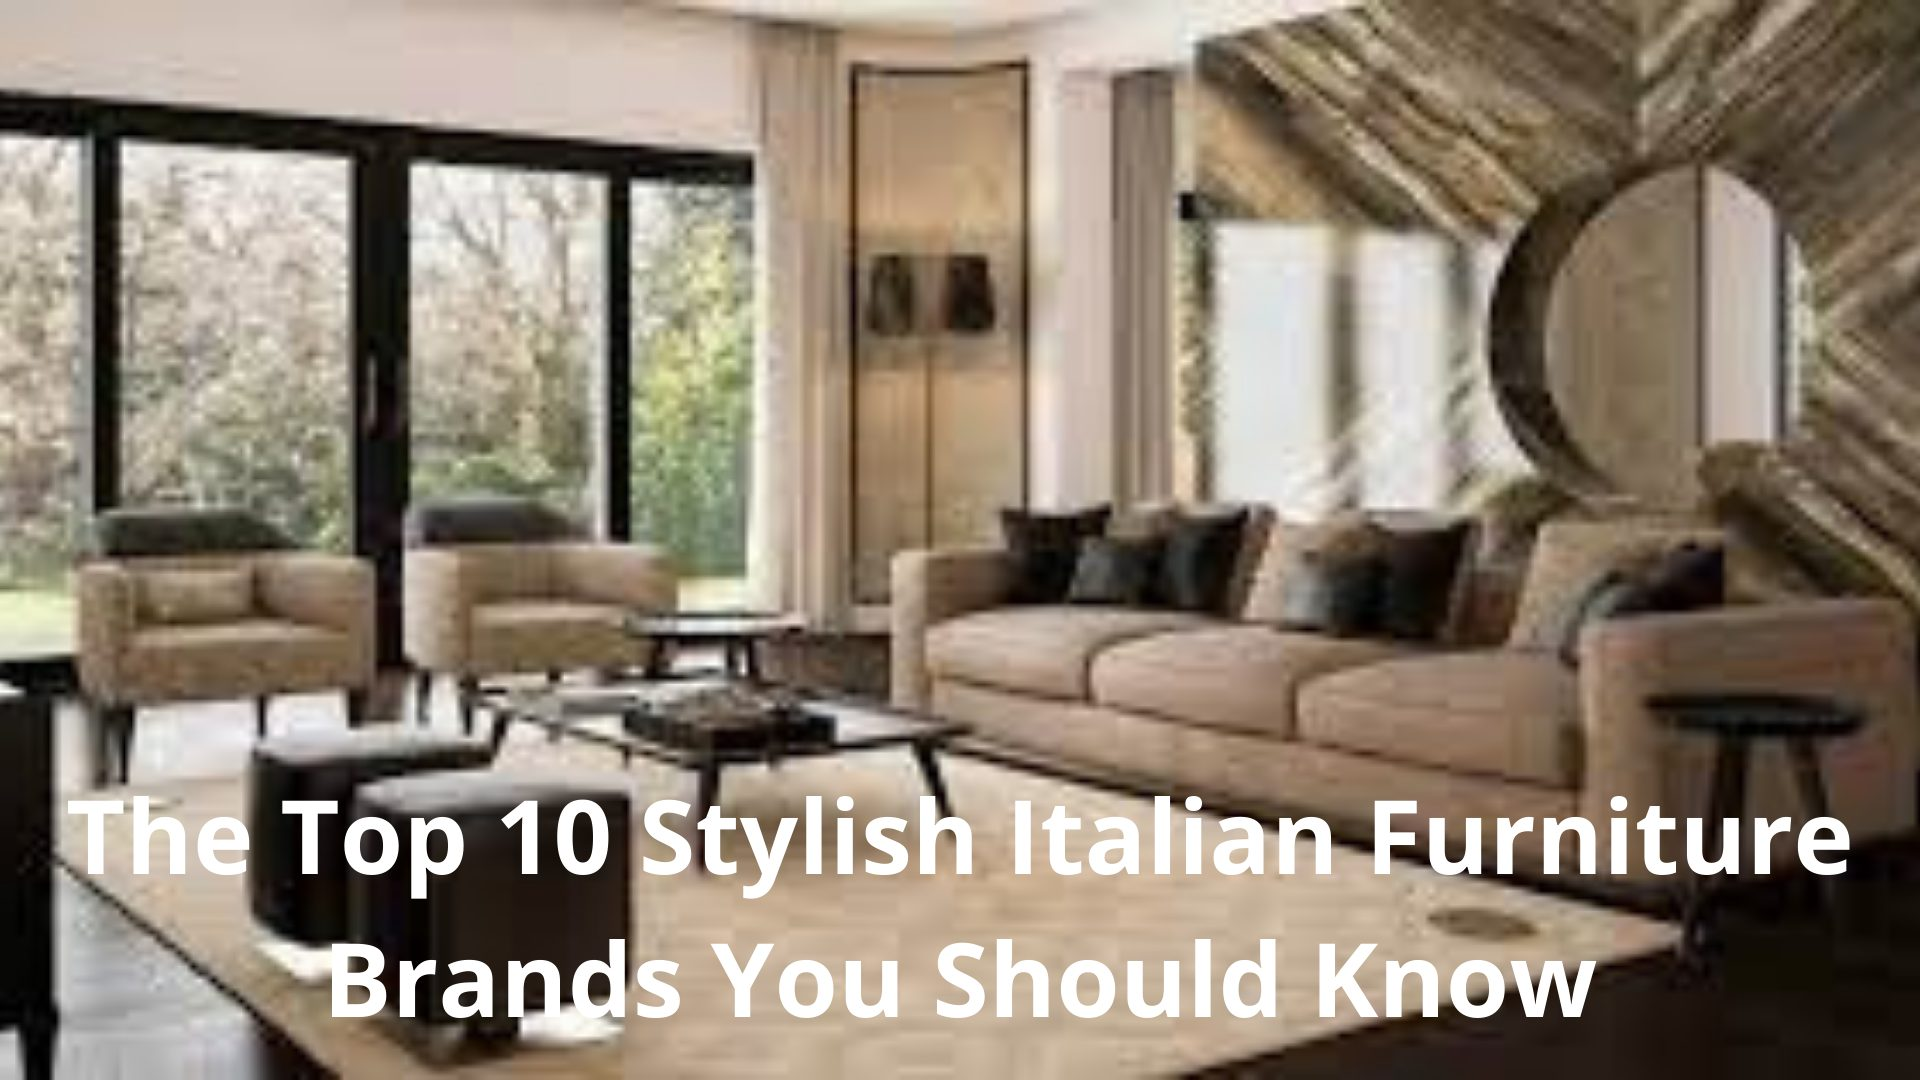 The Top 10 Stylish Italian Furniture Brands You Should Know